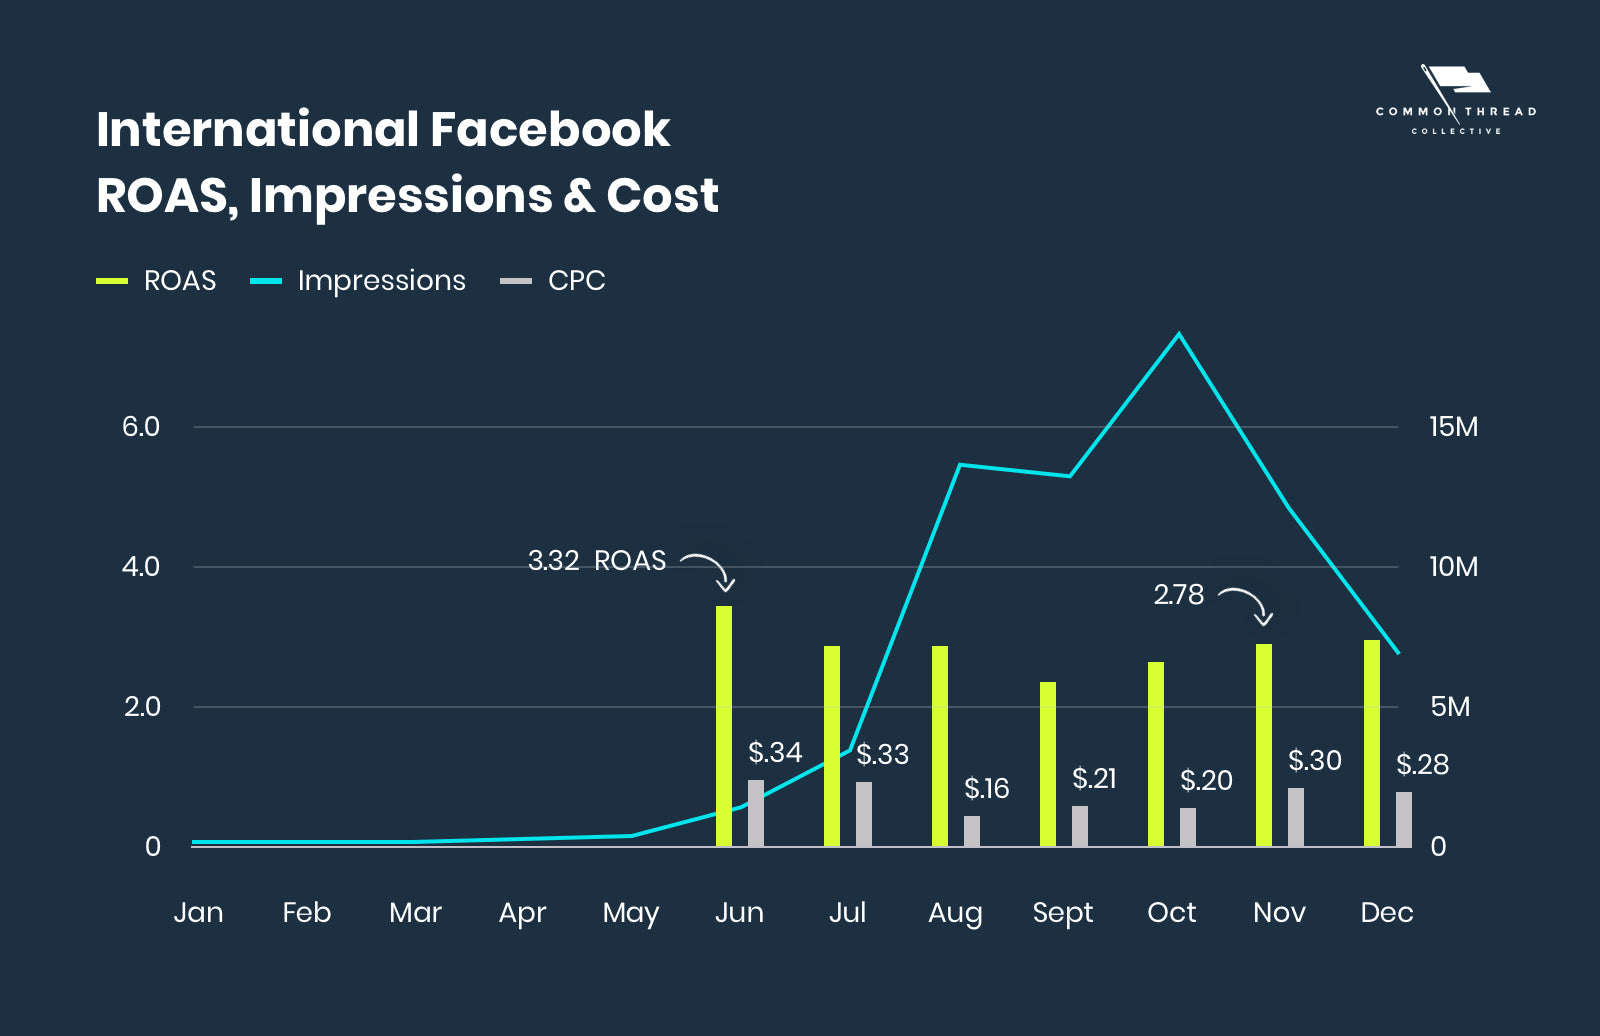 International Facebook ROAS & Impressions